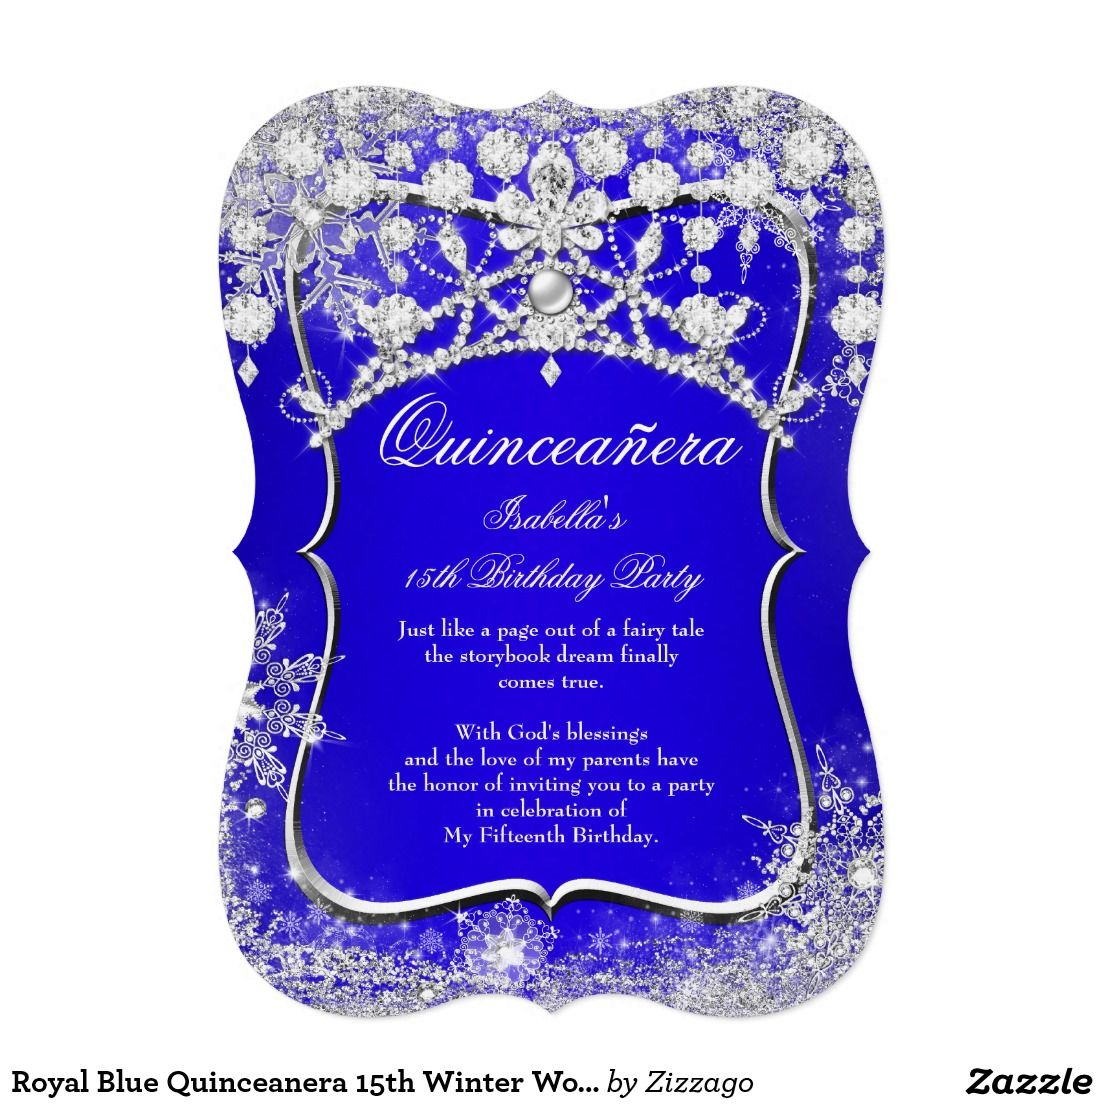 Royal Blue Quinceanera 15th Winter Wonderland Card Birthdays